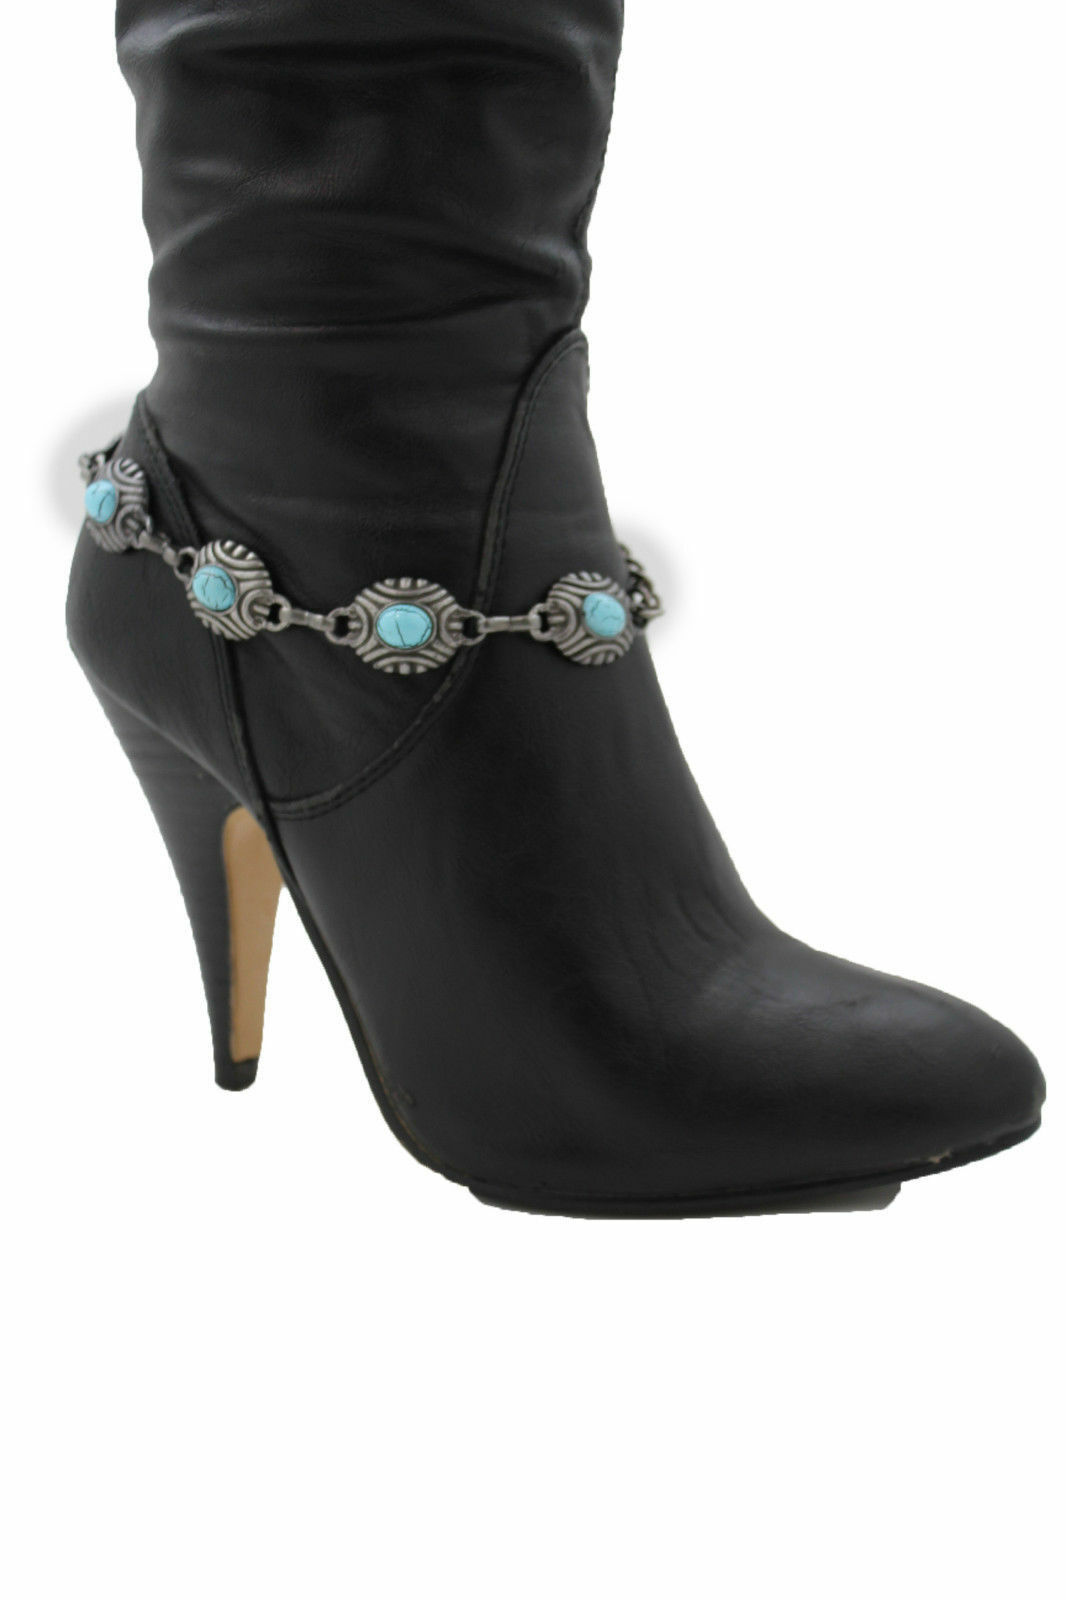 Women Silver Metal Chain Boot Bracelet Western Shoe Charms Anklet Oval Turquoise